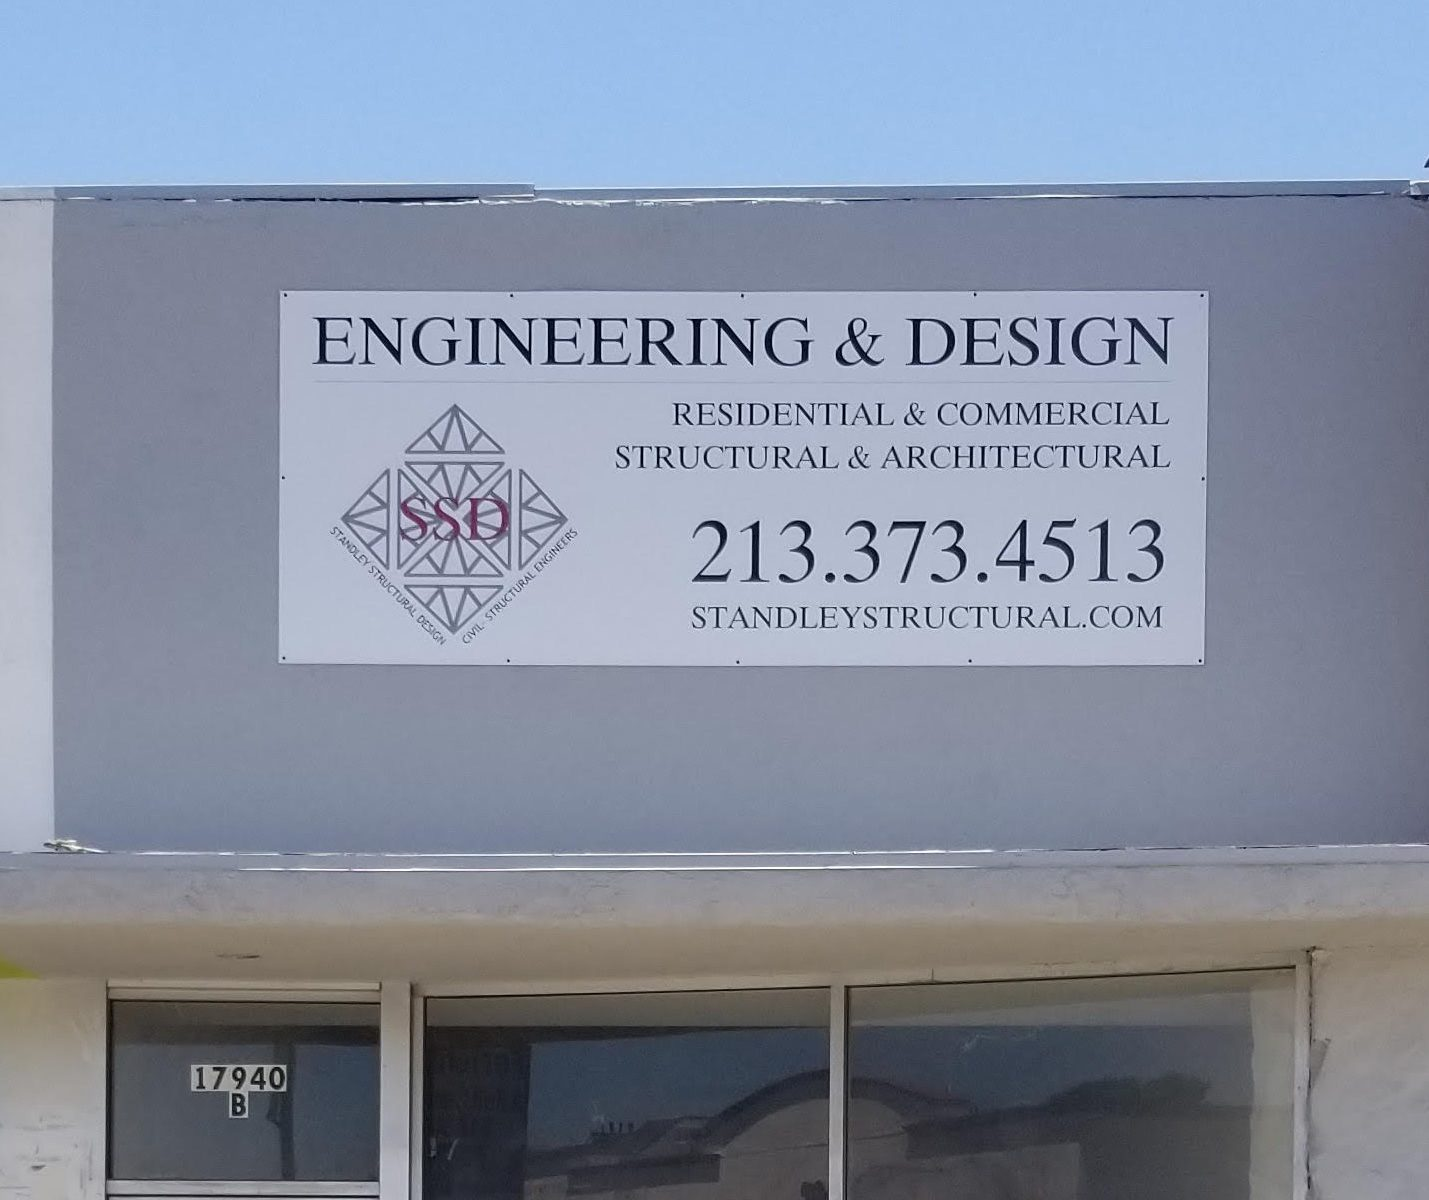 Building Sign, Business Sign, Metal Sign, storefront sign, metal building sign, office sign, firm sign, sign and banner company near me, sign companies, sign company near me, sign making, sign resource and like companies, signs for sale for business